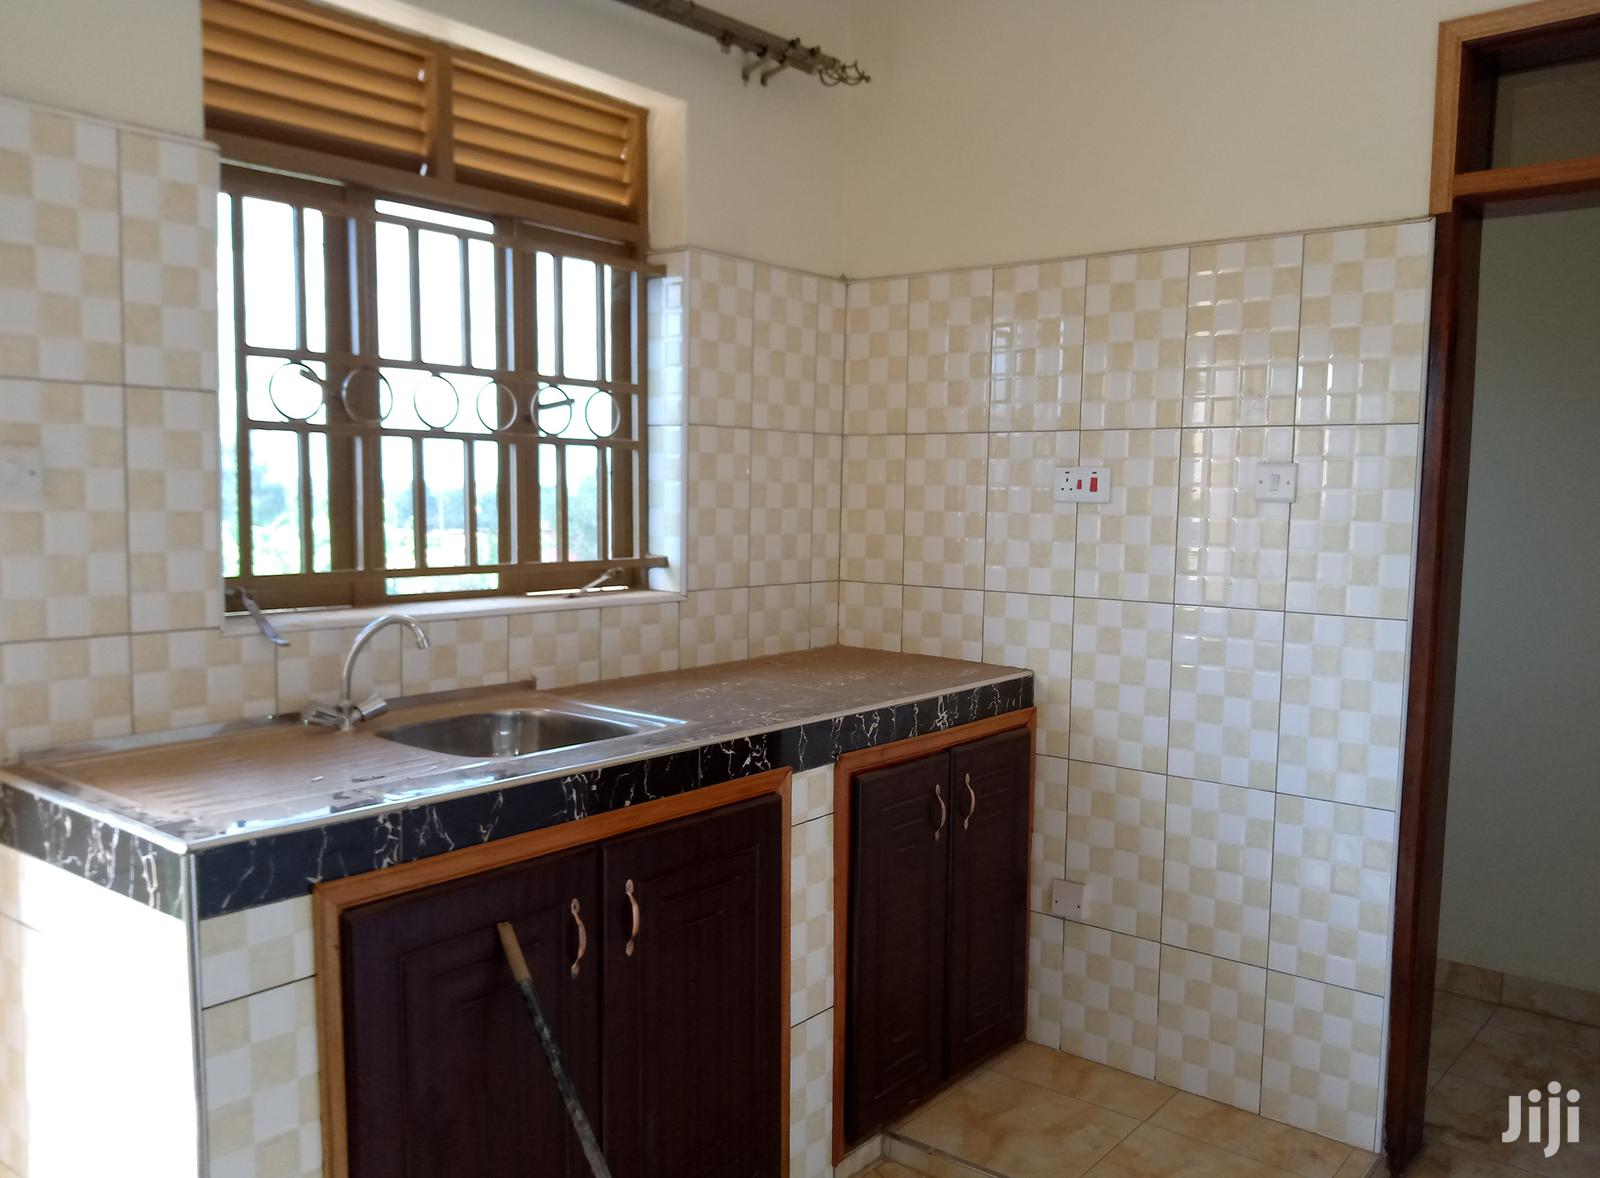 Kiwatule 2 Bedroom House For Rent | Houses & Apartments For Rent for sale in Kampala, Central Region, Uganda